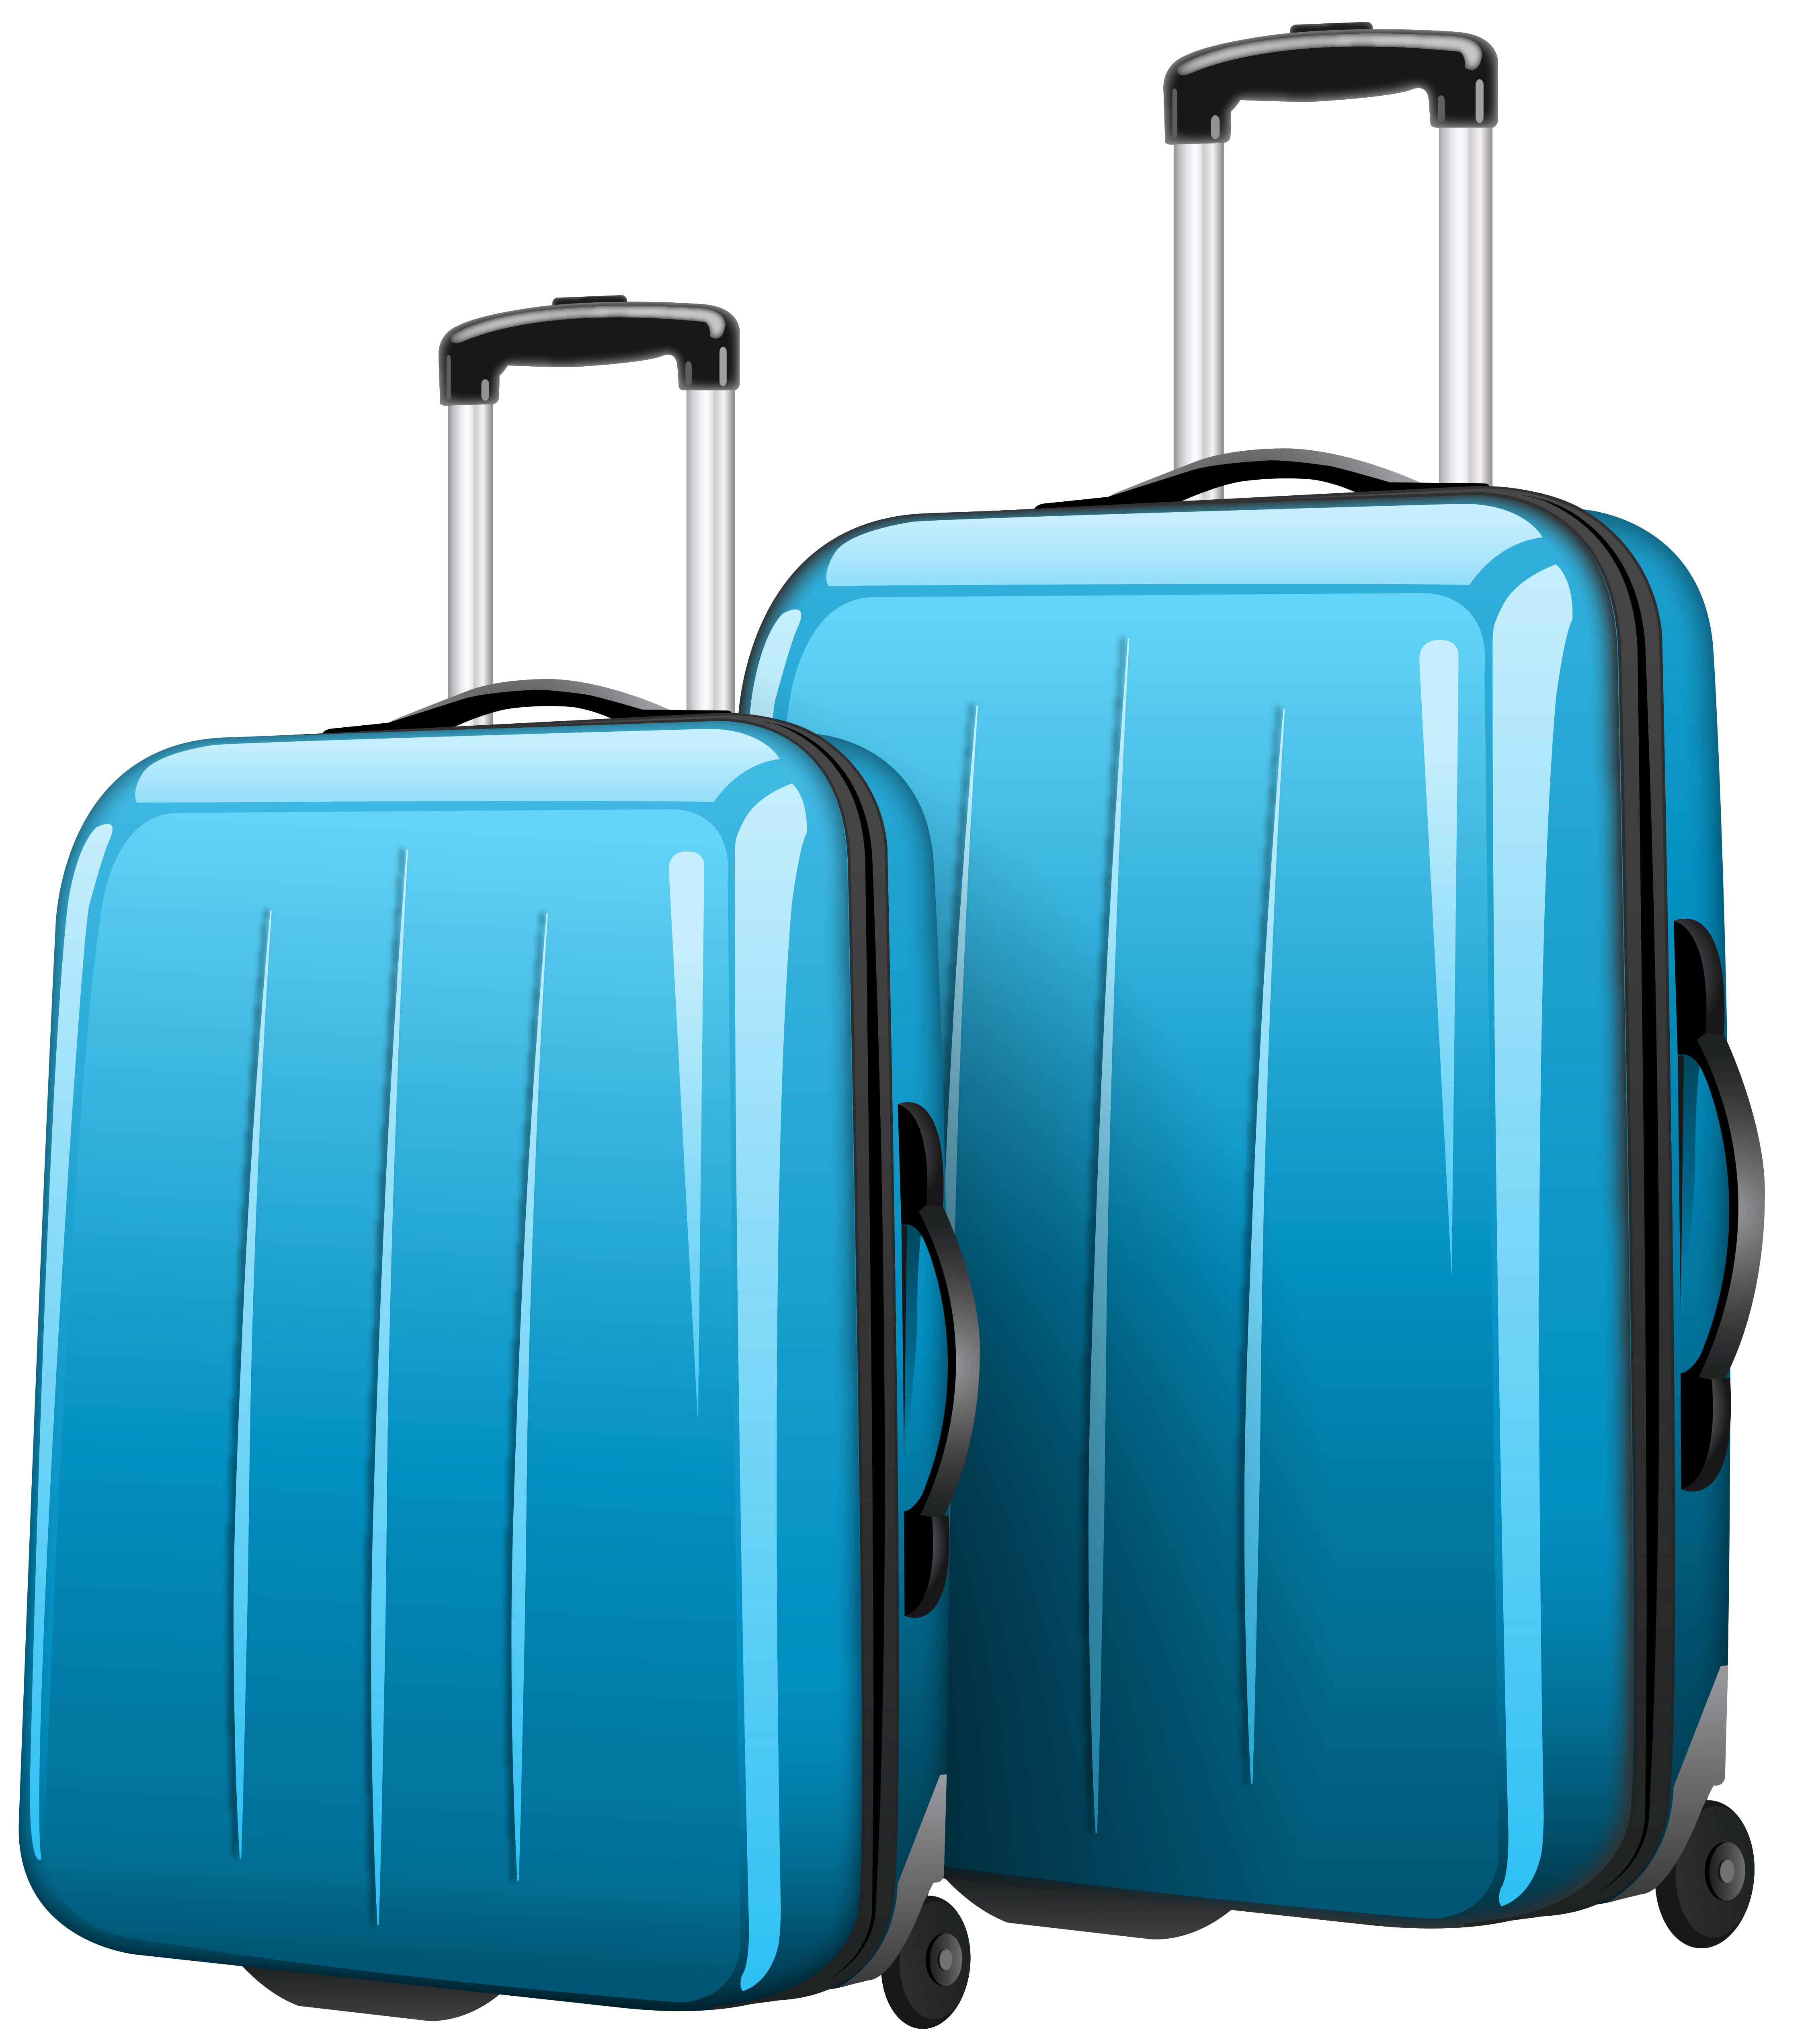 Travel suitcase png. Two blue bags clipart